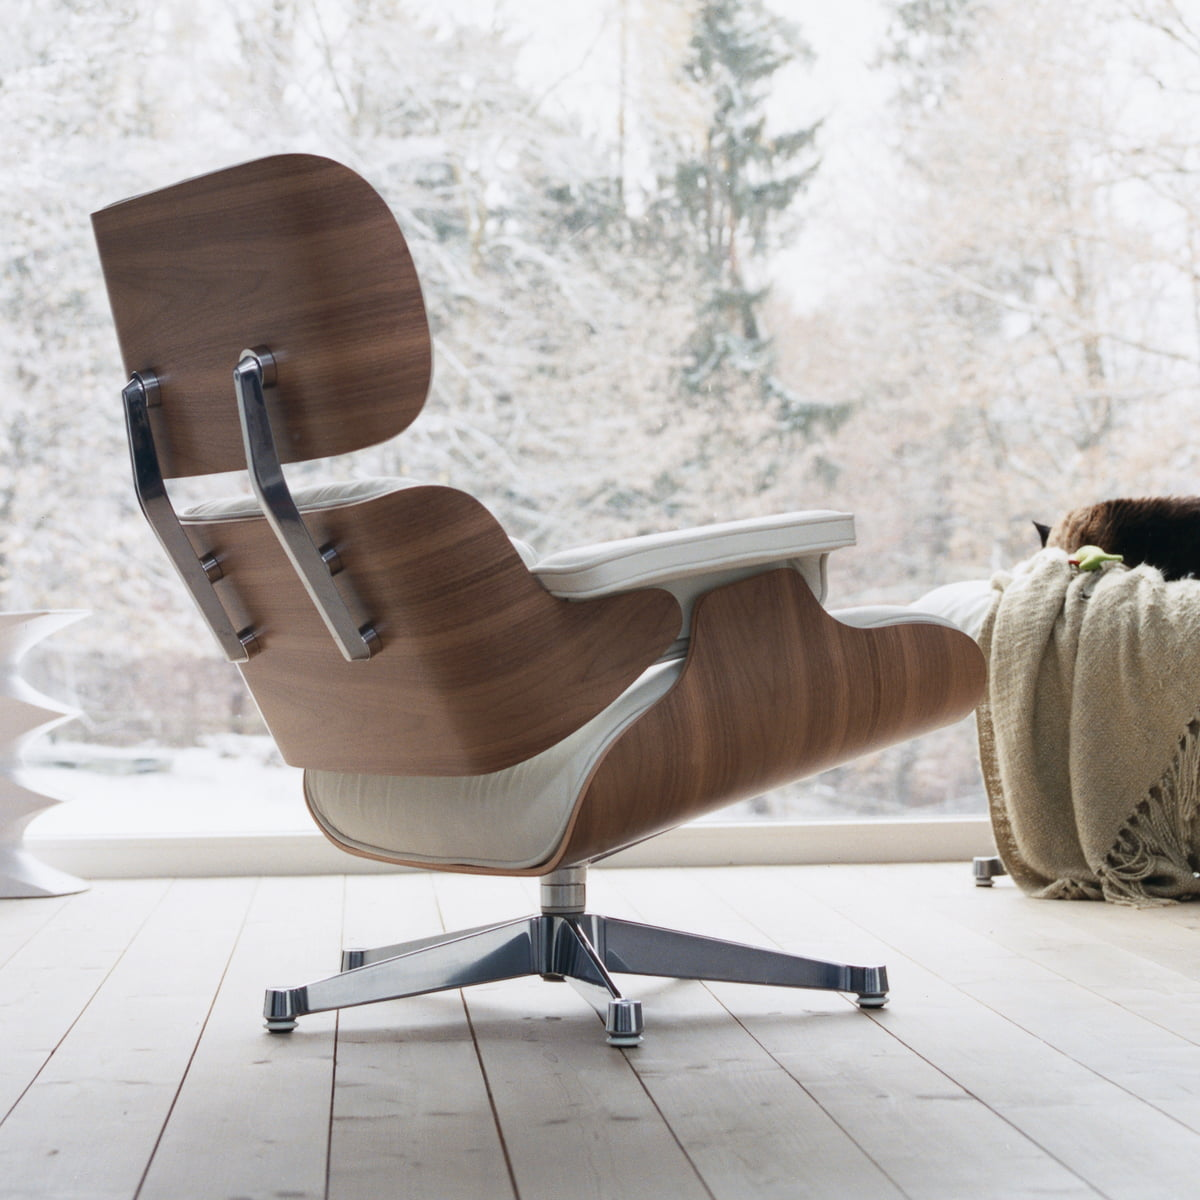 vitra lounge chair in wei im wohndesign shop. Black Bedroom Furniture Sets. Home Design Ideas